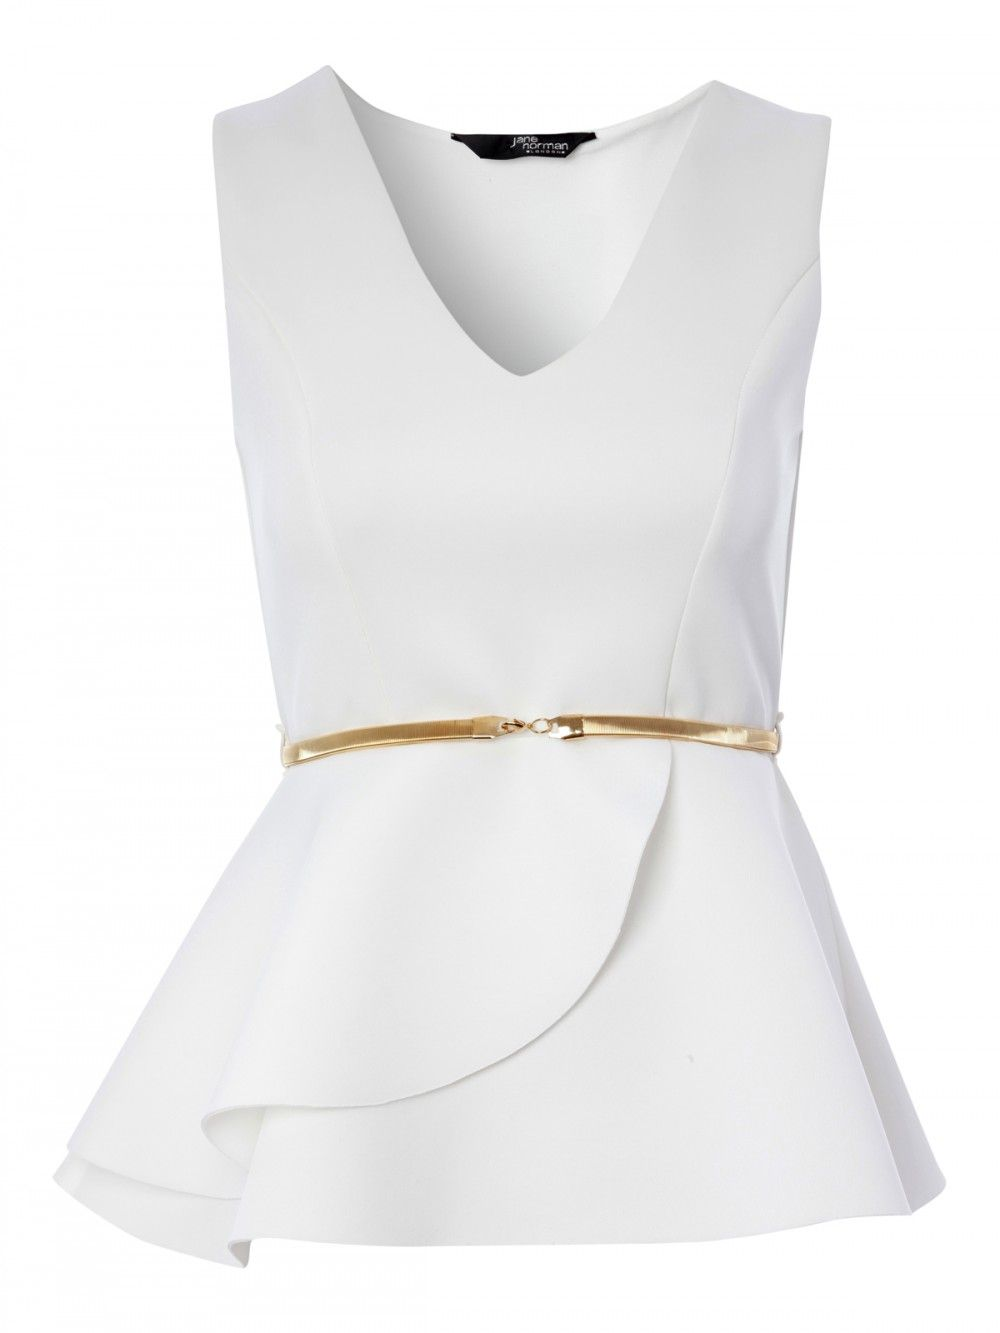 Blusa Más | White blouses/shirts | Pinterest | Blusas, Camisas y Costura